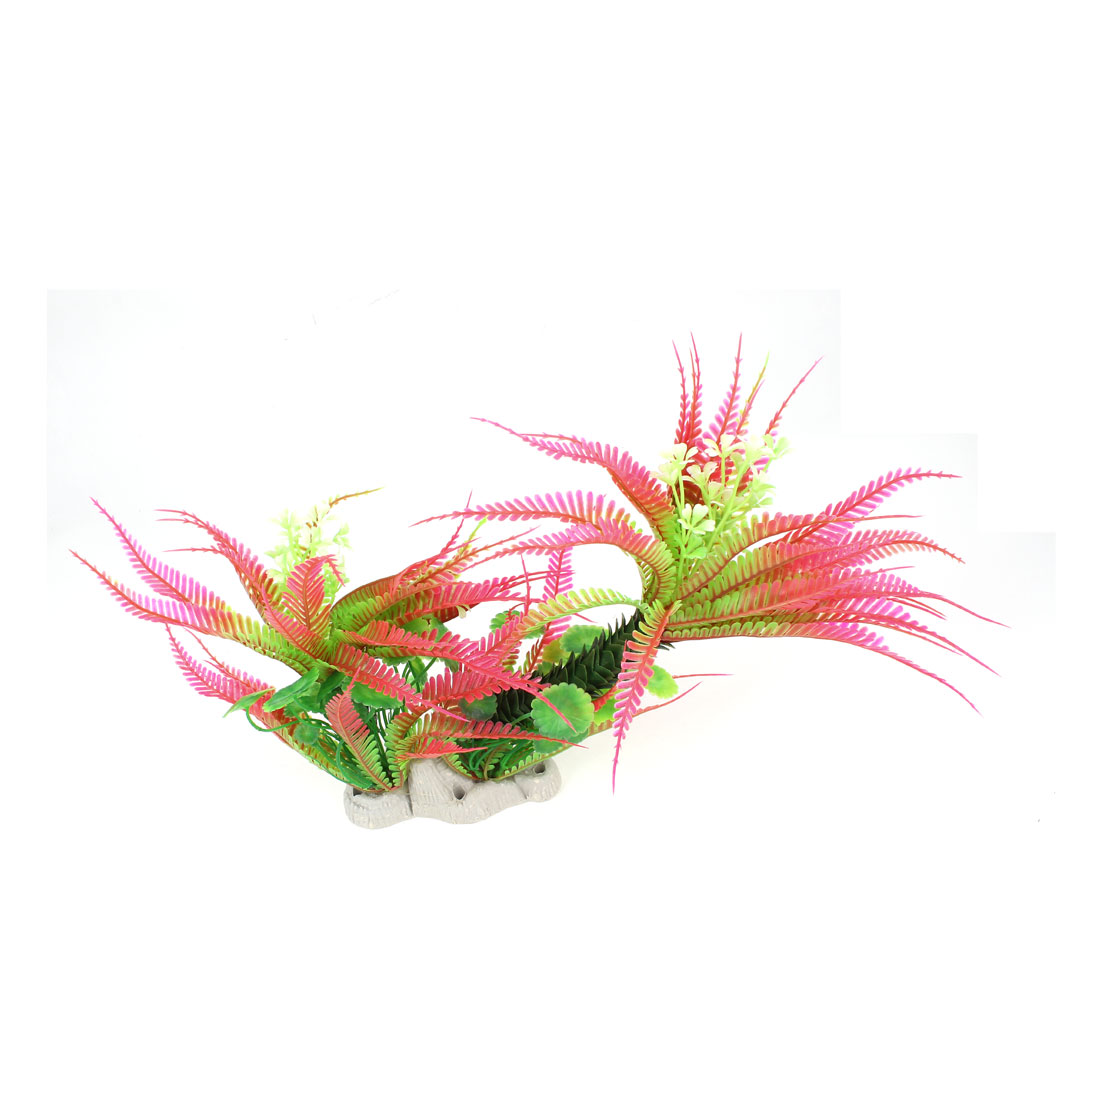 "Fish Tank Decoration 11.8"" Height Coconut Tree Underwater Aquarium Plant Grass Green Pink"